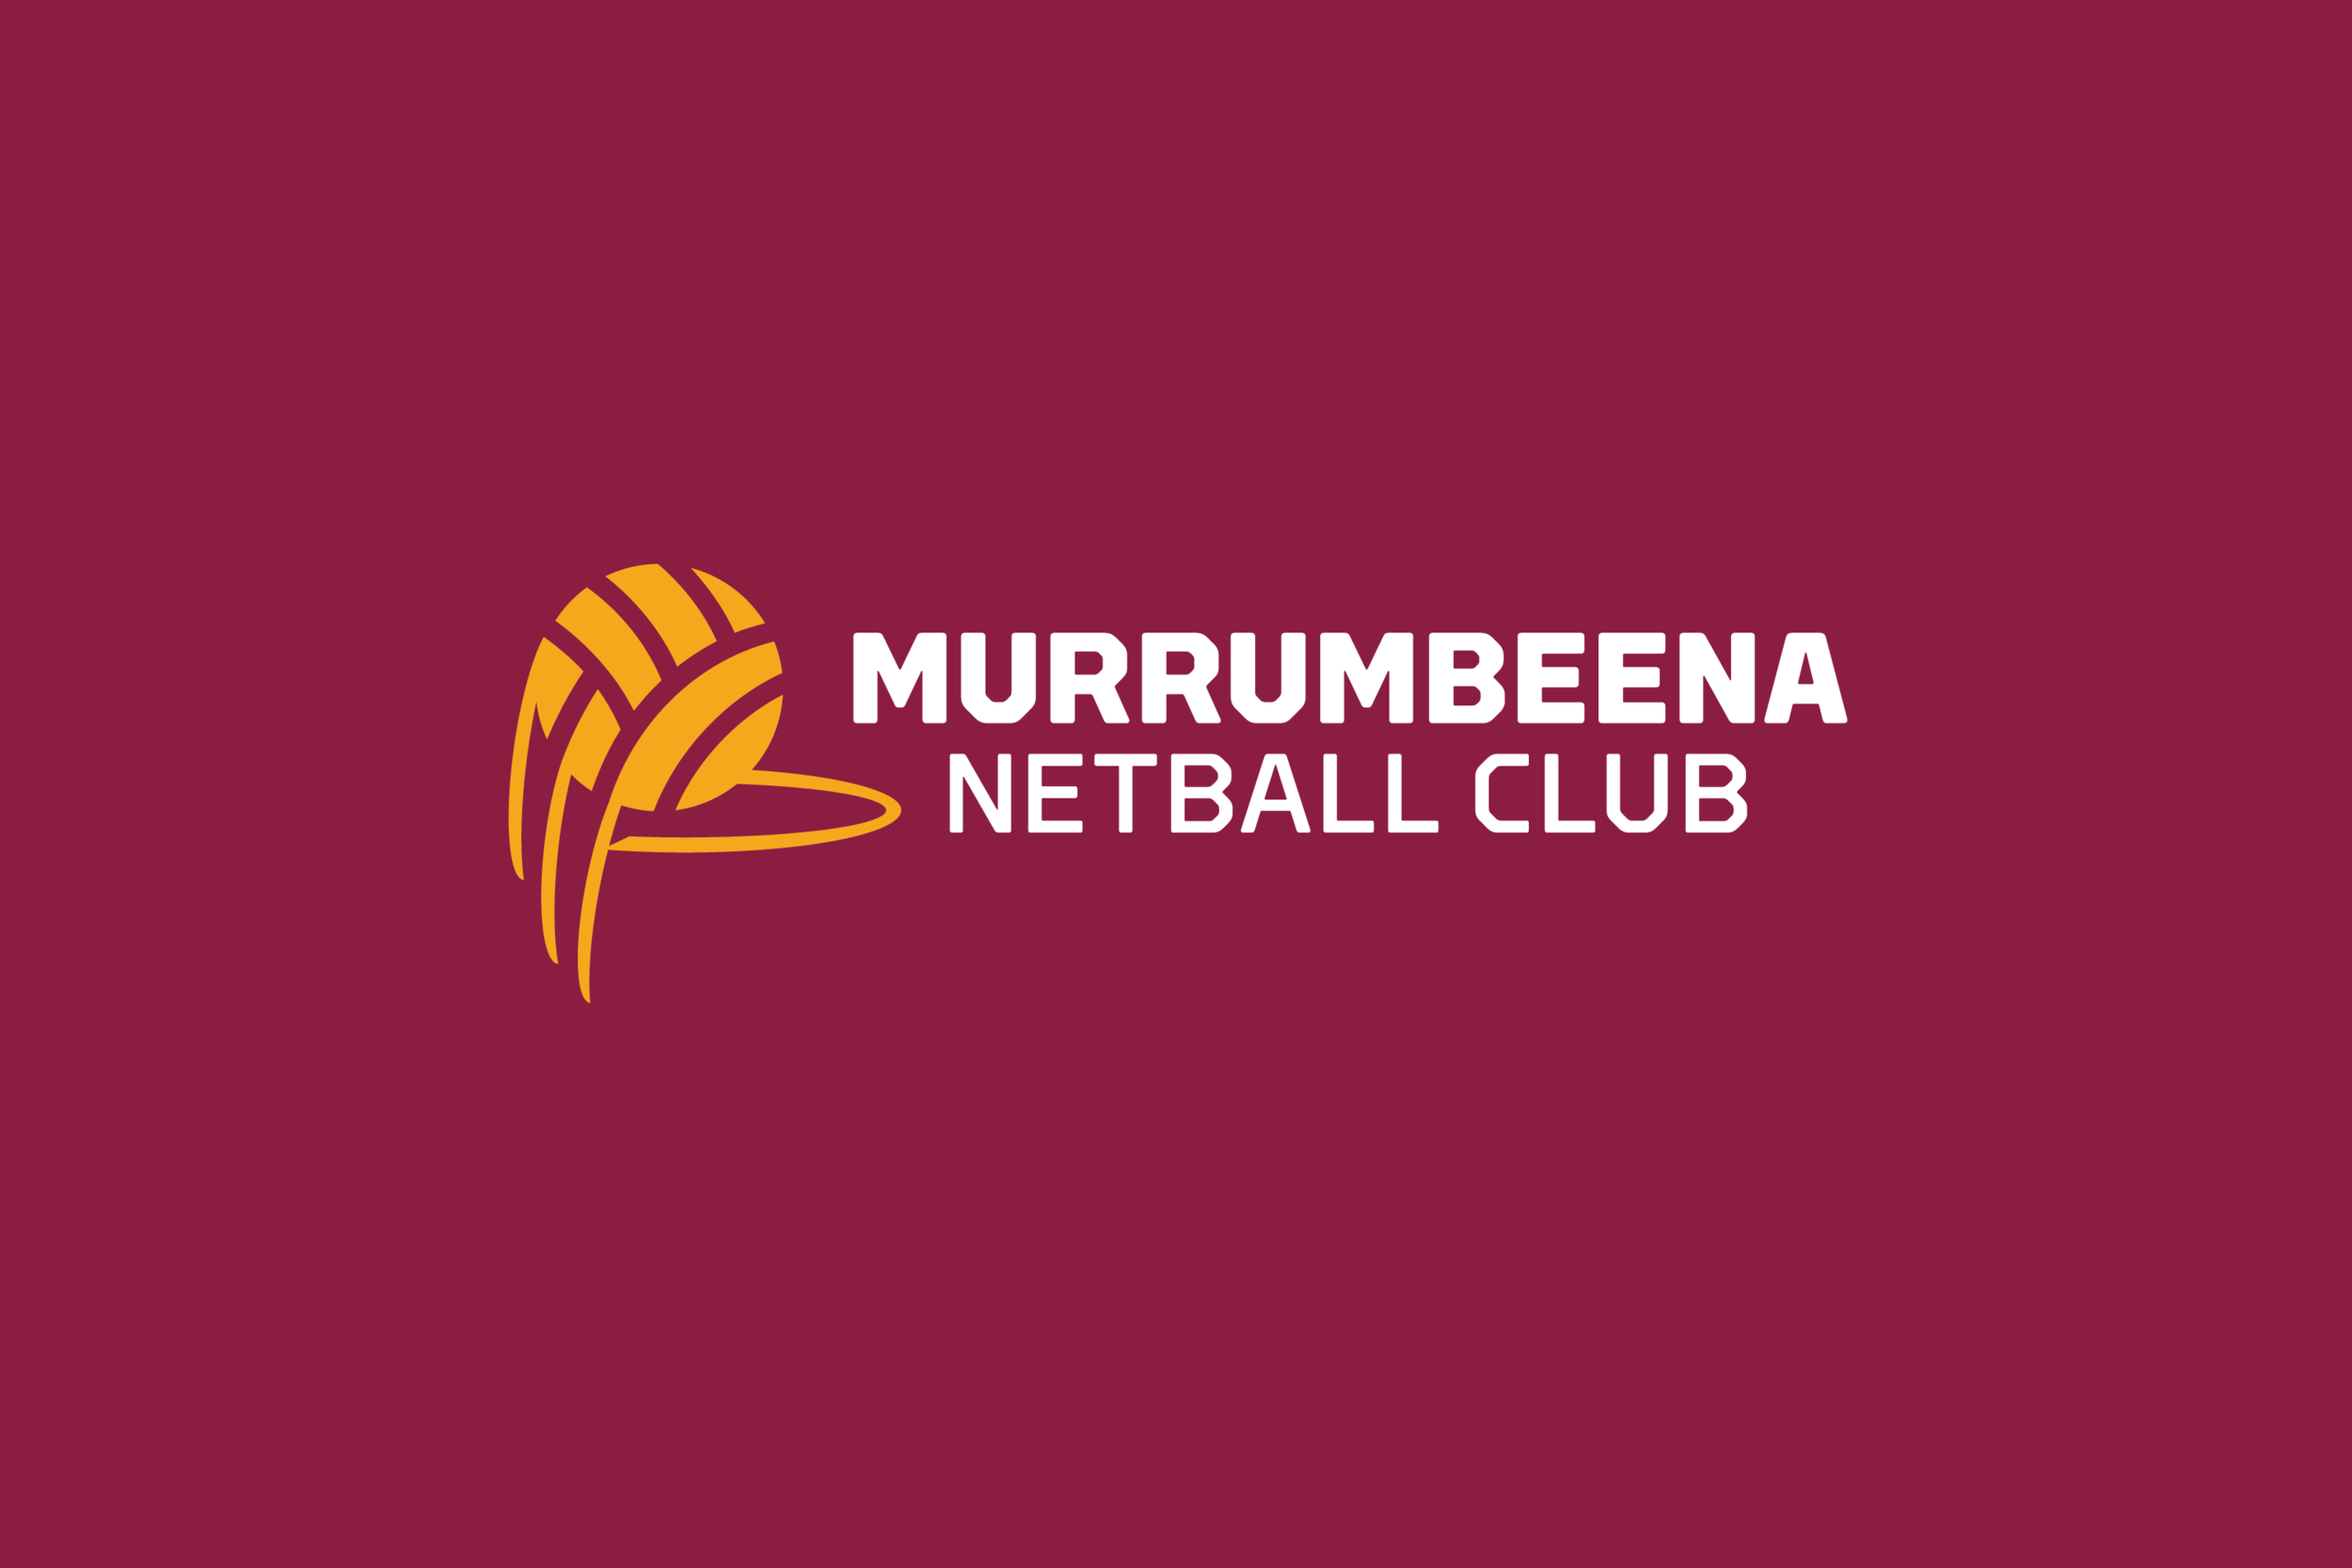 Murrumbeena Netball Club Master logo refresh